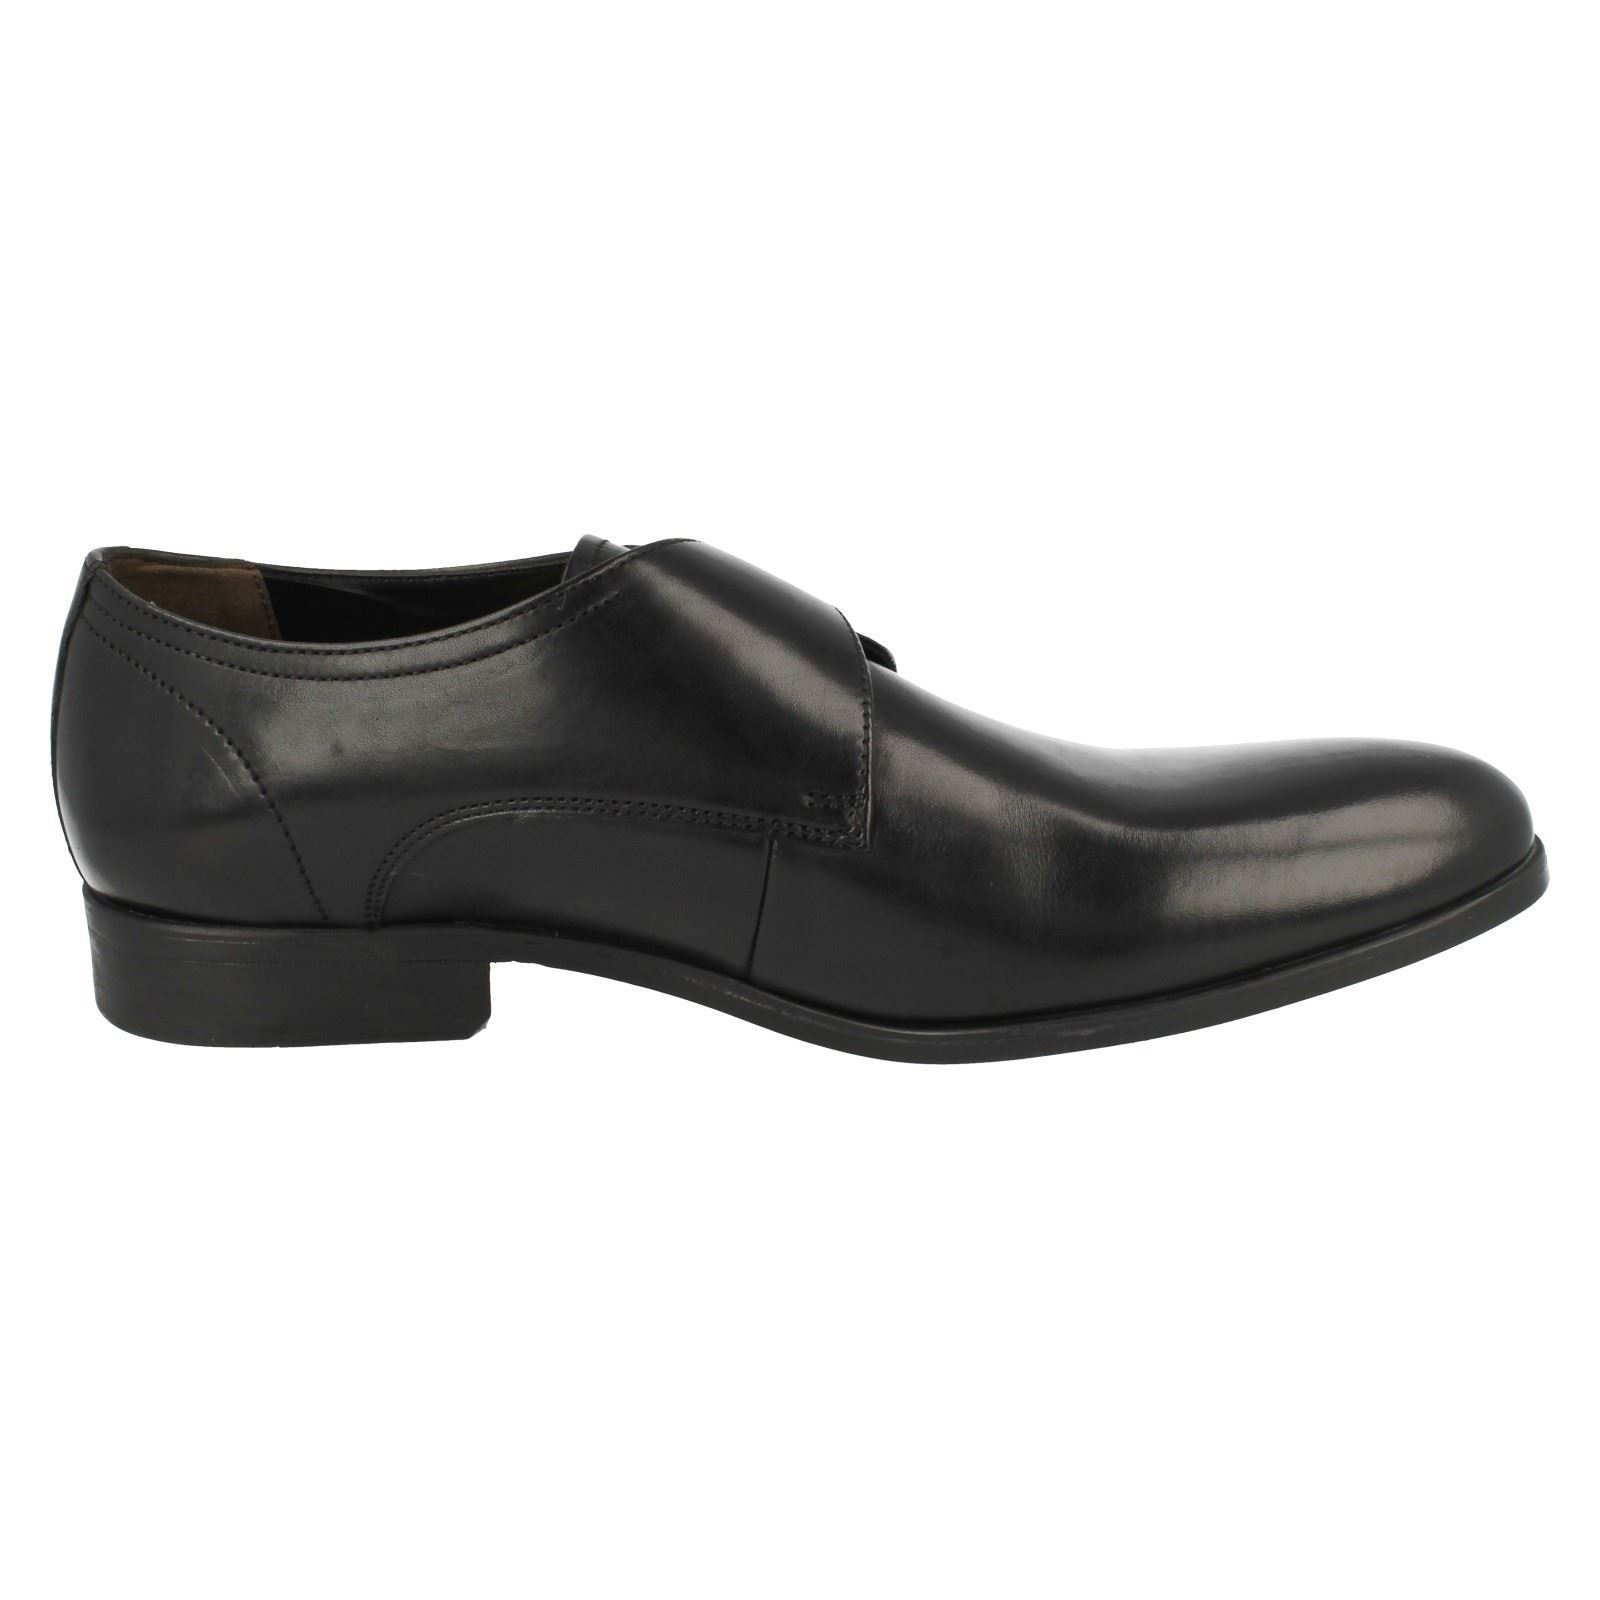 Hommes Clarks Chaussures formelles le Styel-Banfield Styel-Banfield Styel-Banfield MOINE 3255cc